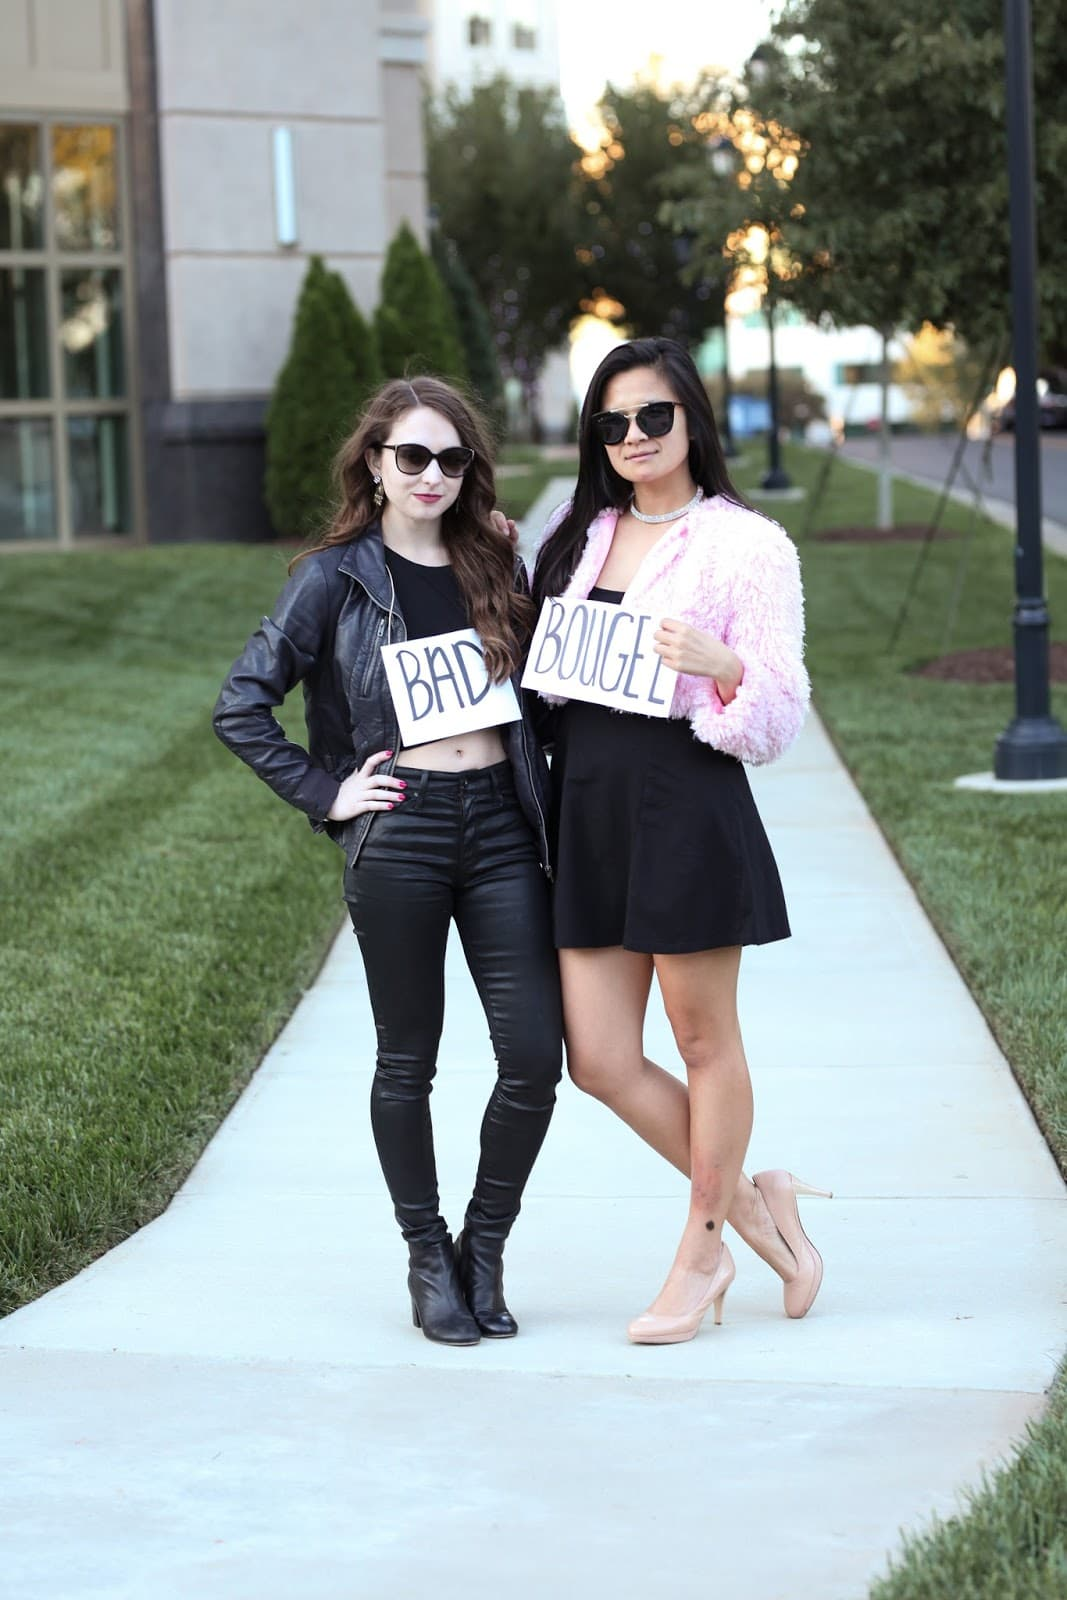 Bad + Bougee Friend Halloween Costume - Looking for cute, cheap, and easy Halloween costumes or unique last-minute, DIY Halloween costume ideas? Check out these 40 Creative Halloween Costume Ideas for women, moms, cute couples, small and large families, and best friends! You're sure to win the best Halloween costumes with these picks. #halloween #halloweencostumes #halloweencostumeideas #easycostumes